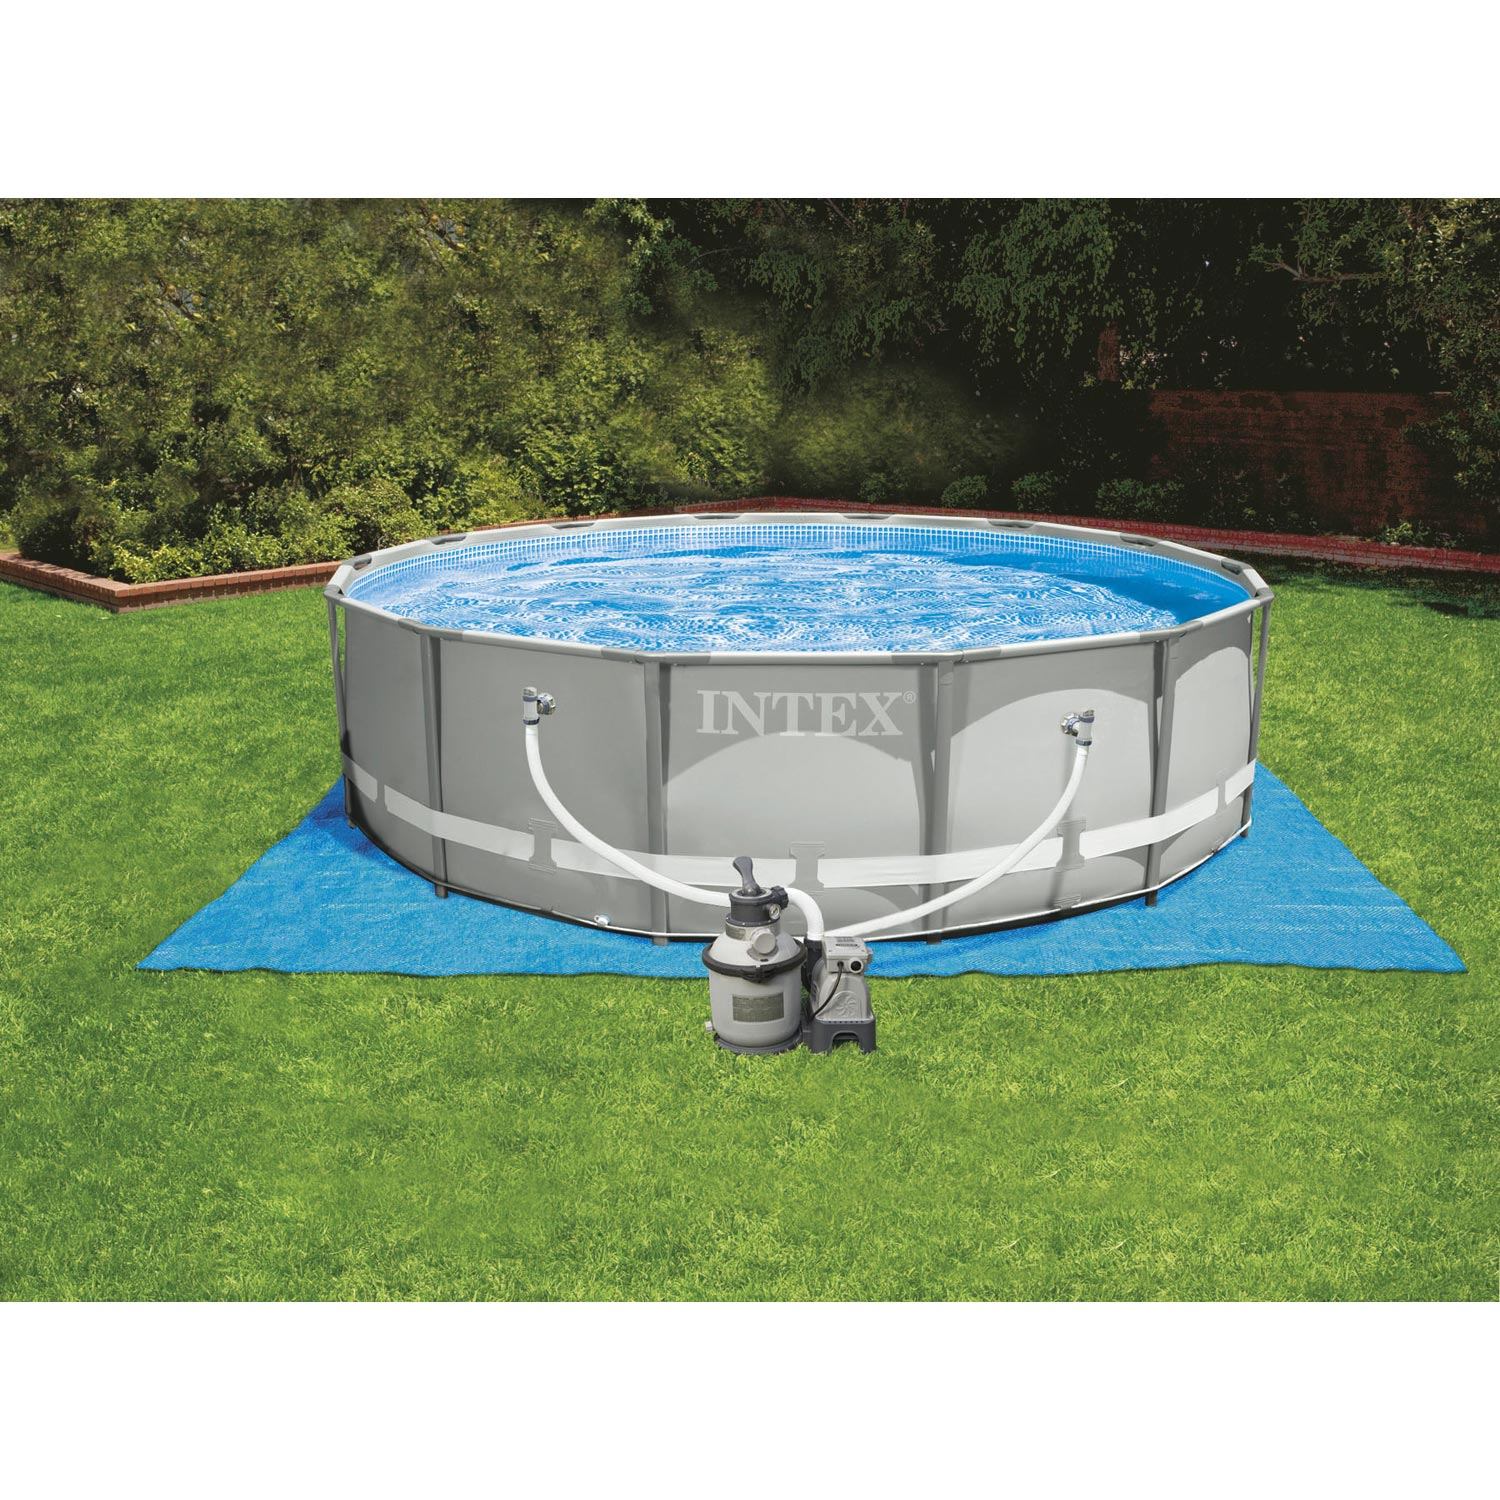 Piscine hors sol autoportante tubulaire ultra frame intex for Piscine hors sol blooma